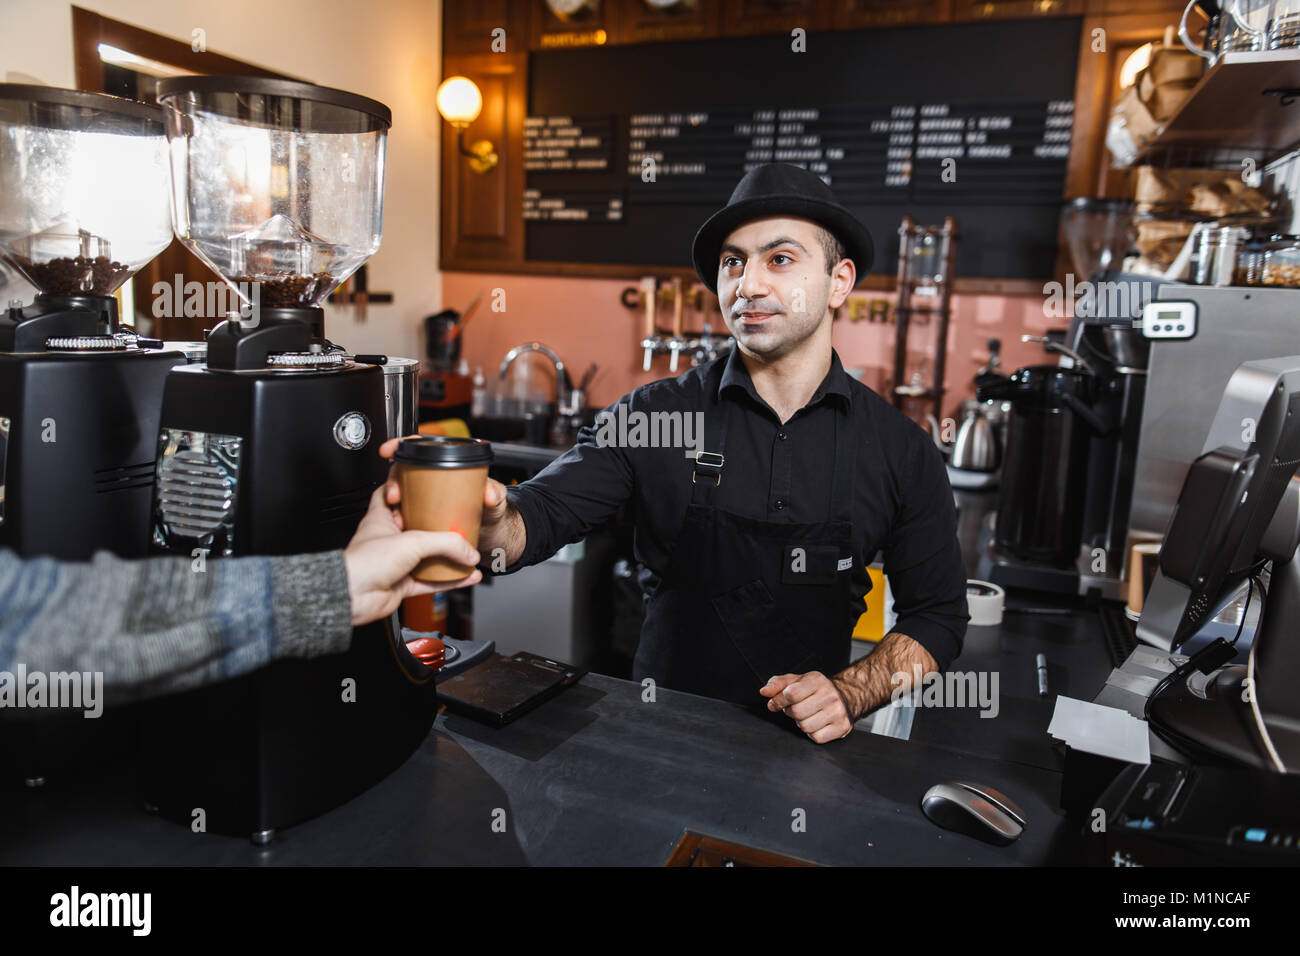 Positive barista male selling coffee to a consumer in a coffee shop. - Stock Image